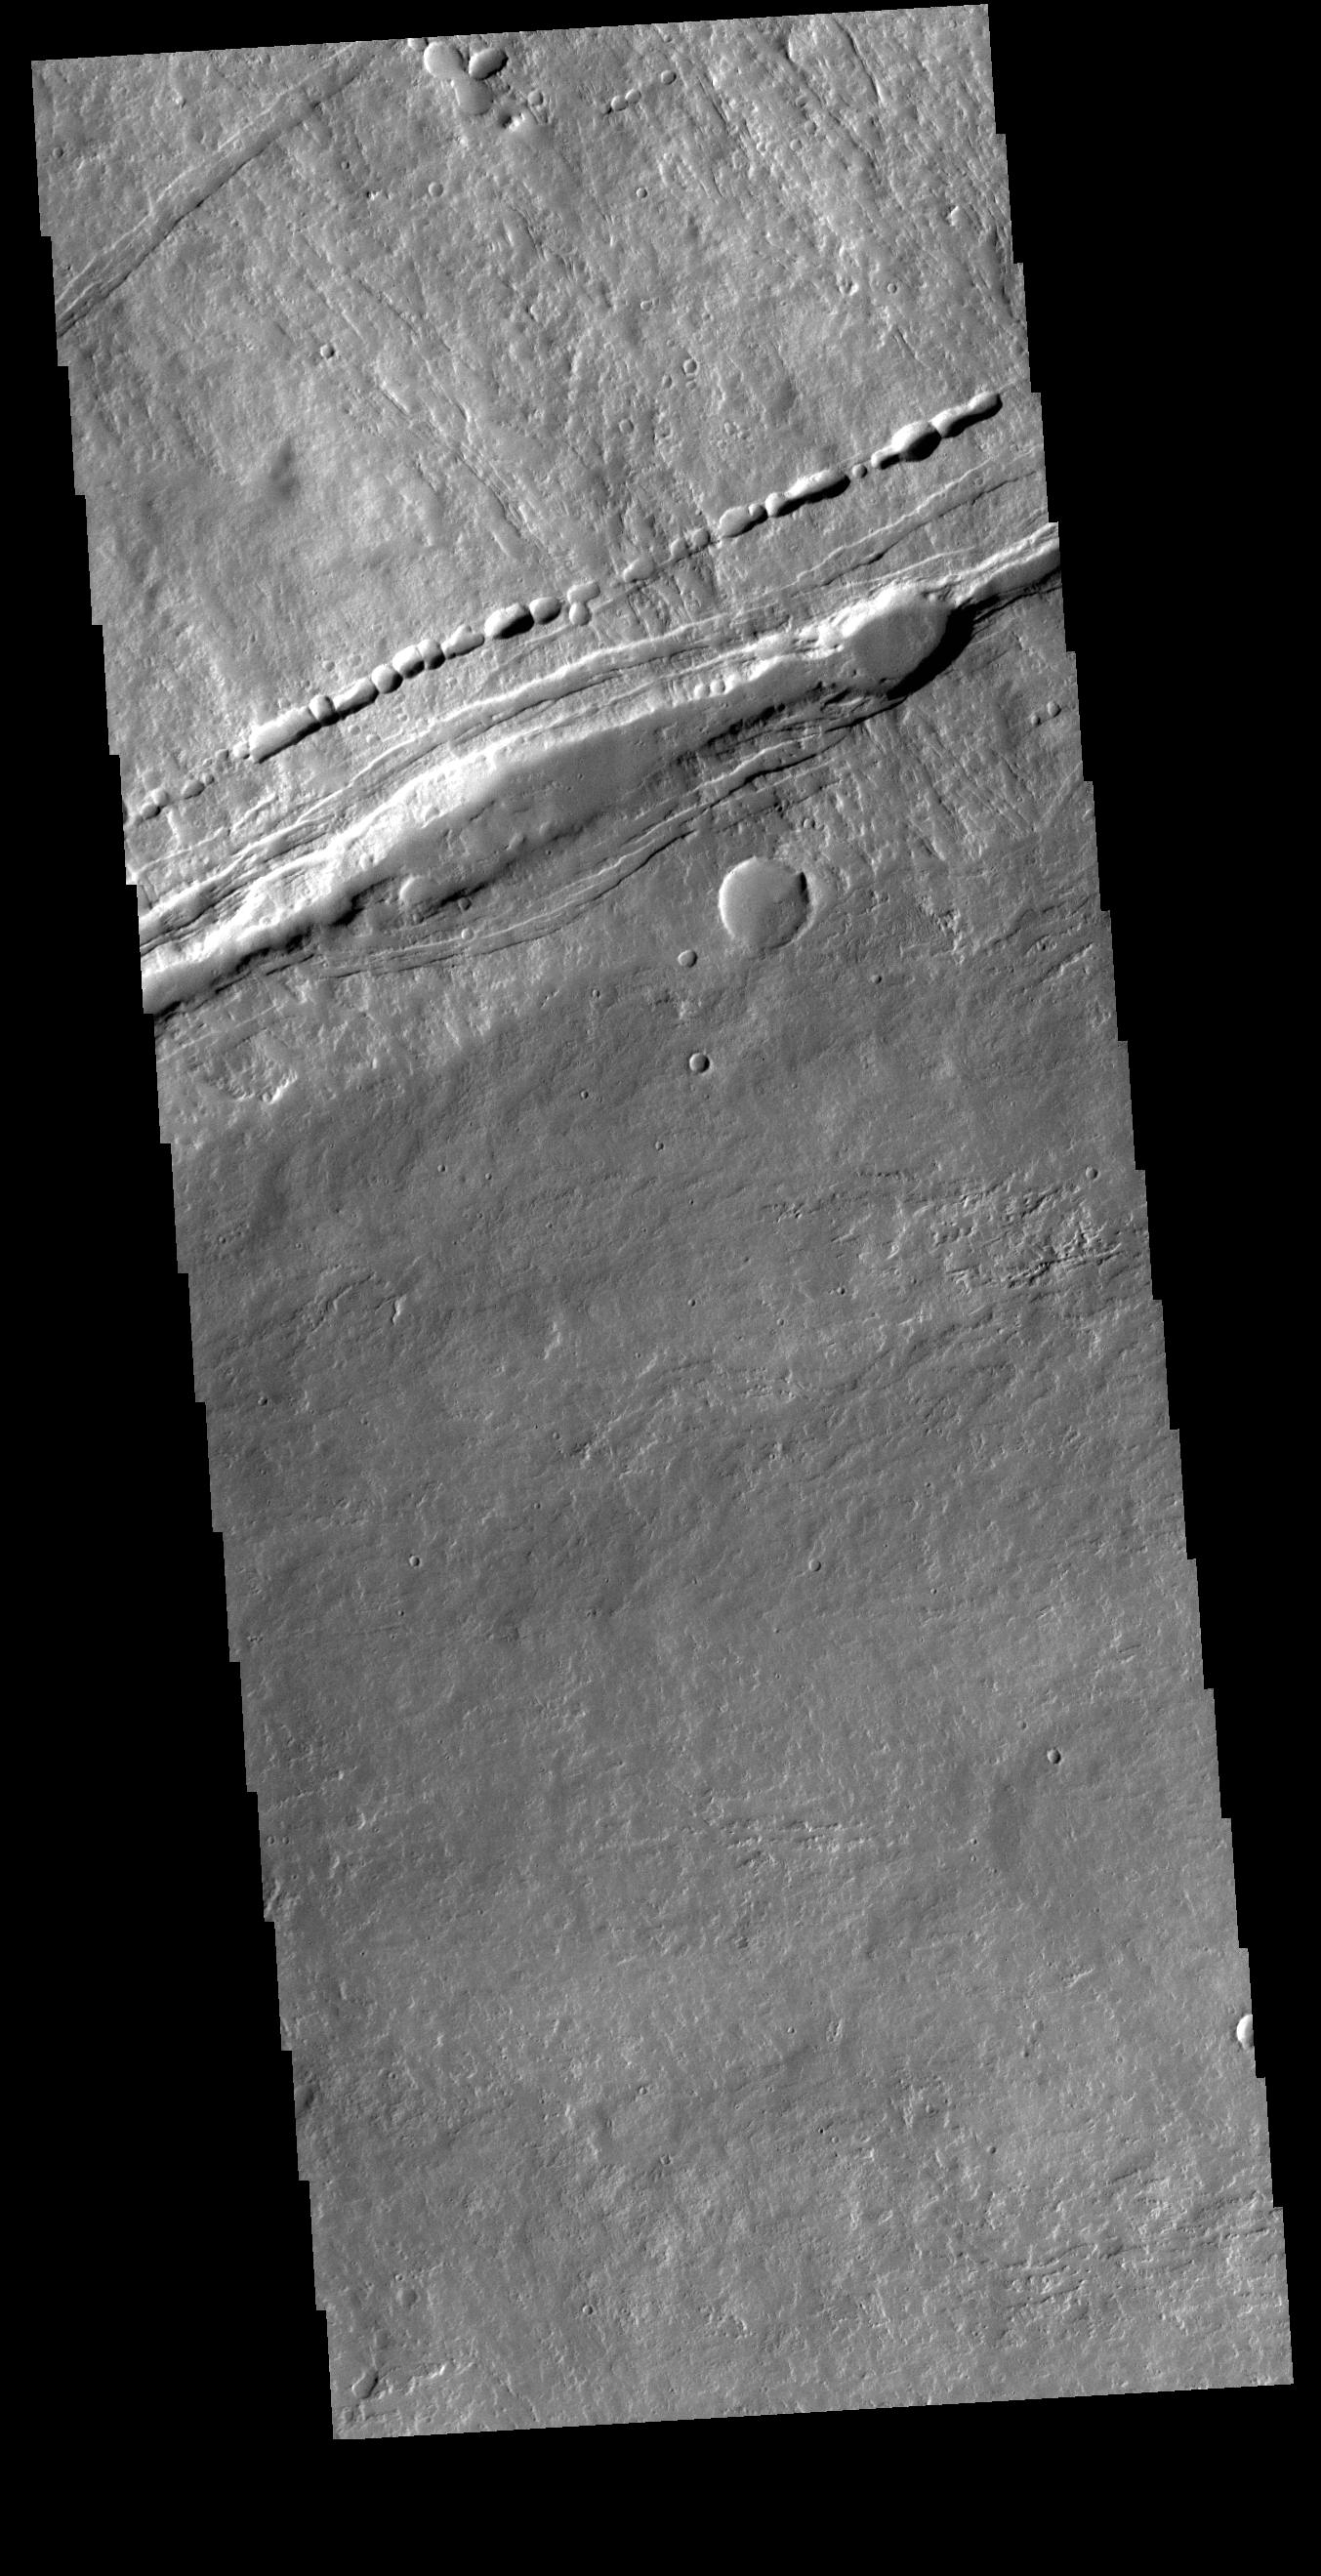 This image from NASAs Mars Odyssey shows the contact of the southern flank of Ascraeus Mons and the surrounding Tharsis region lava flows.